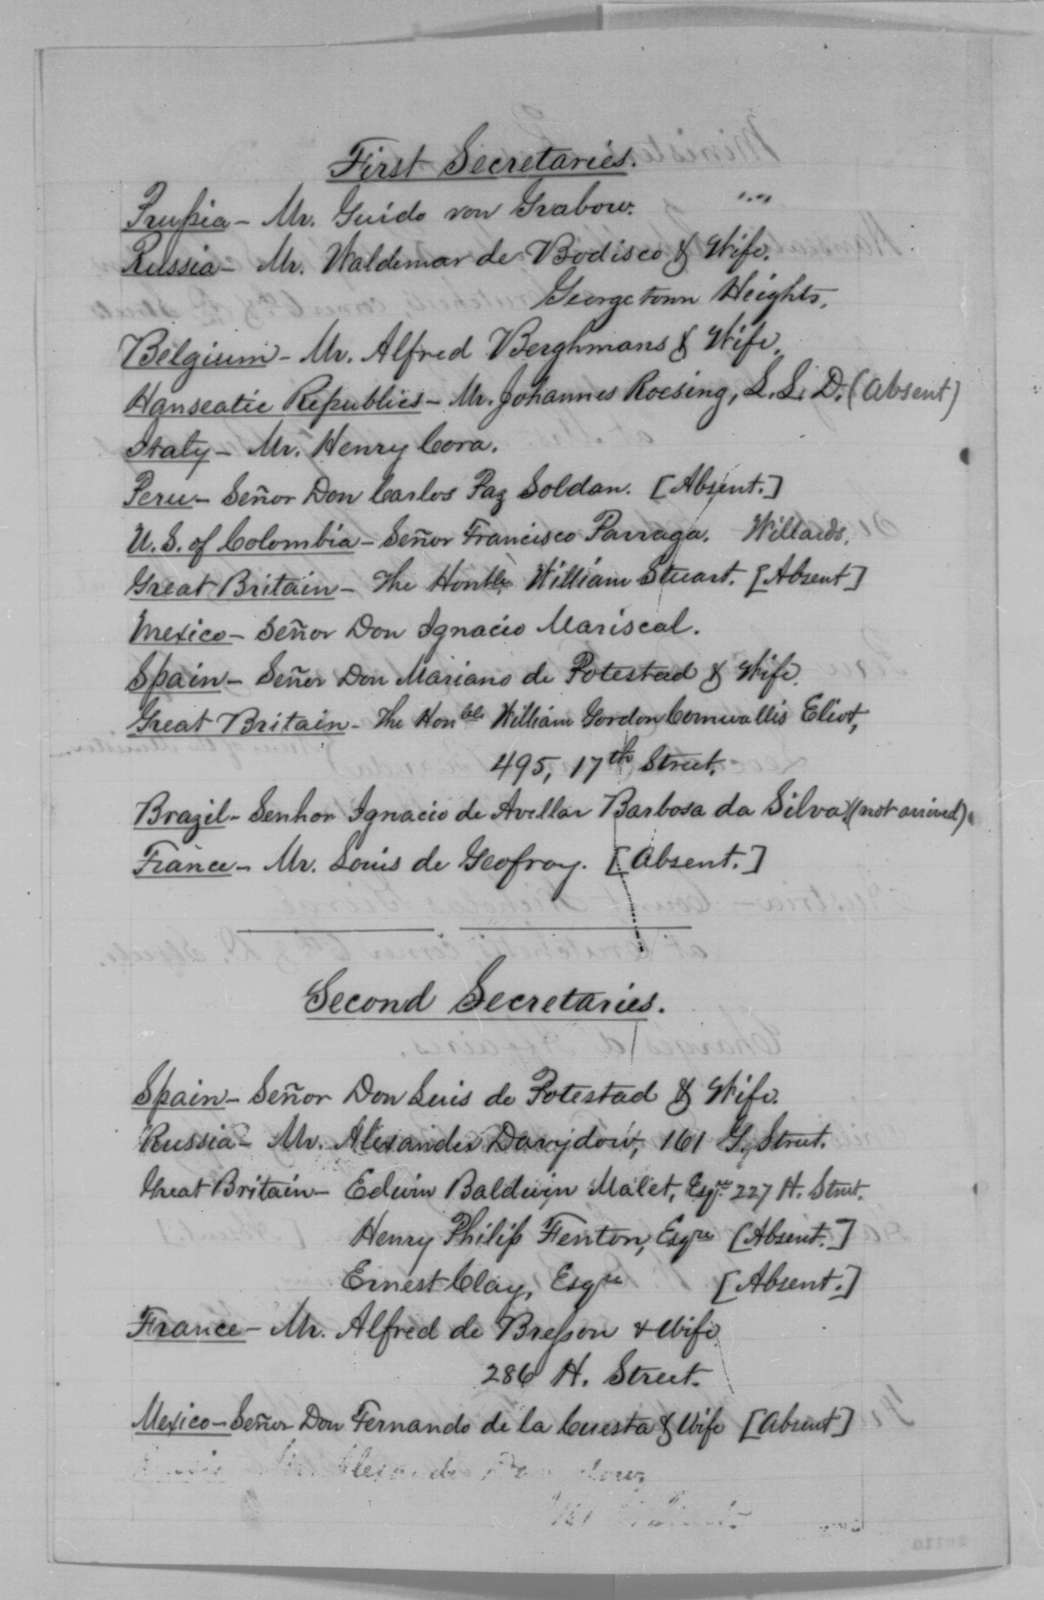 William Hunter, Wednesday, November 18, 1863  (List of members of the diplomatic corps)